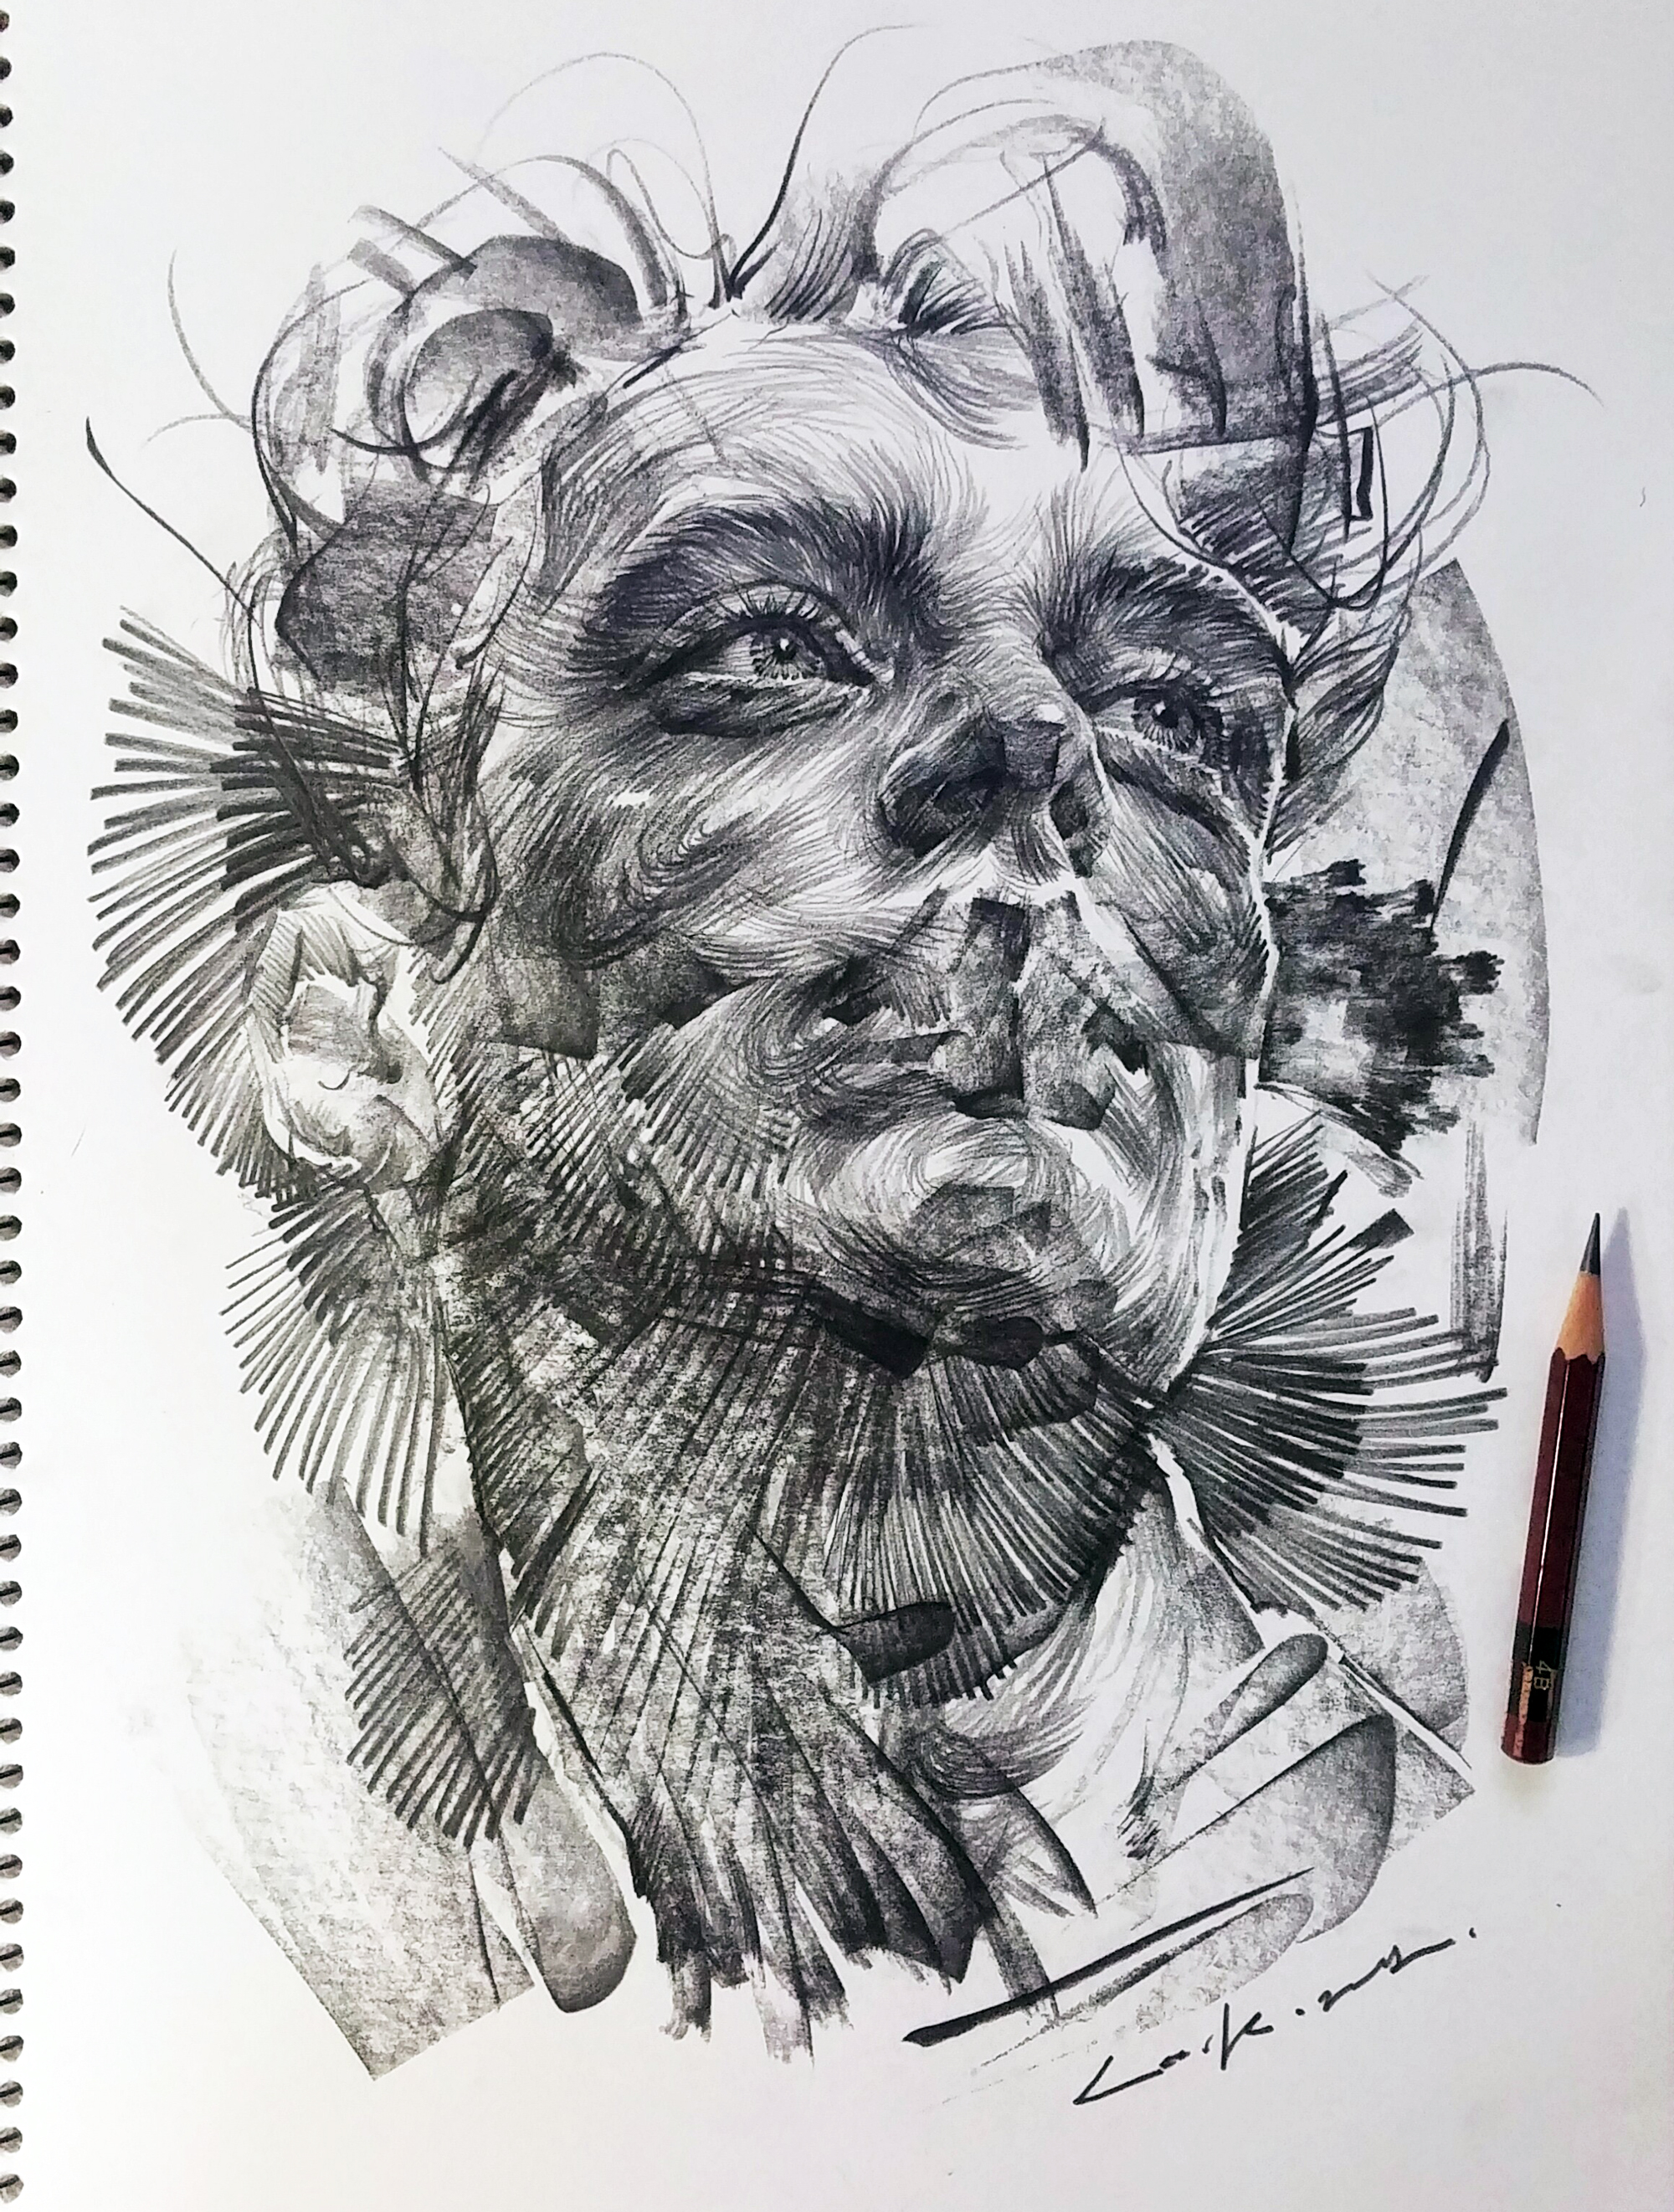 Swirling Lines And Swaths Of Charcoal Form Dramatic